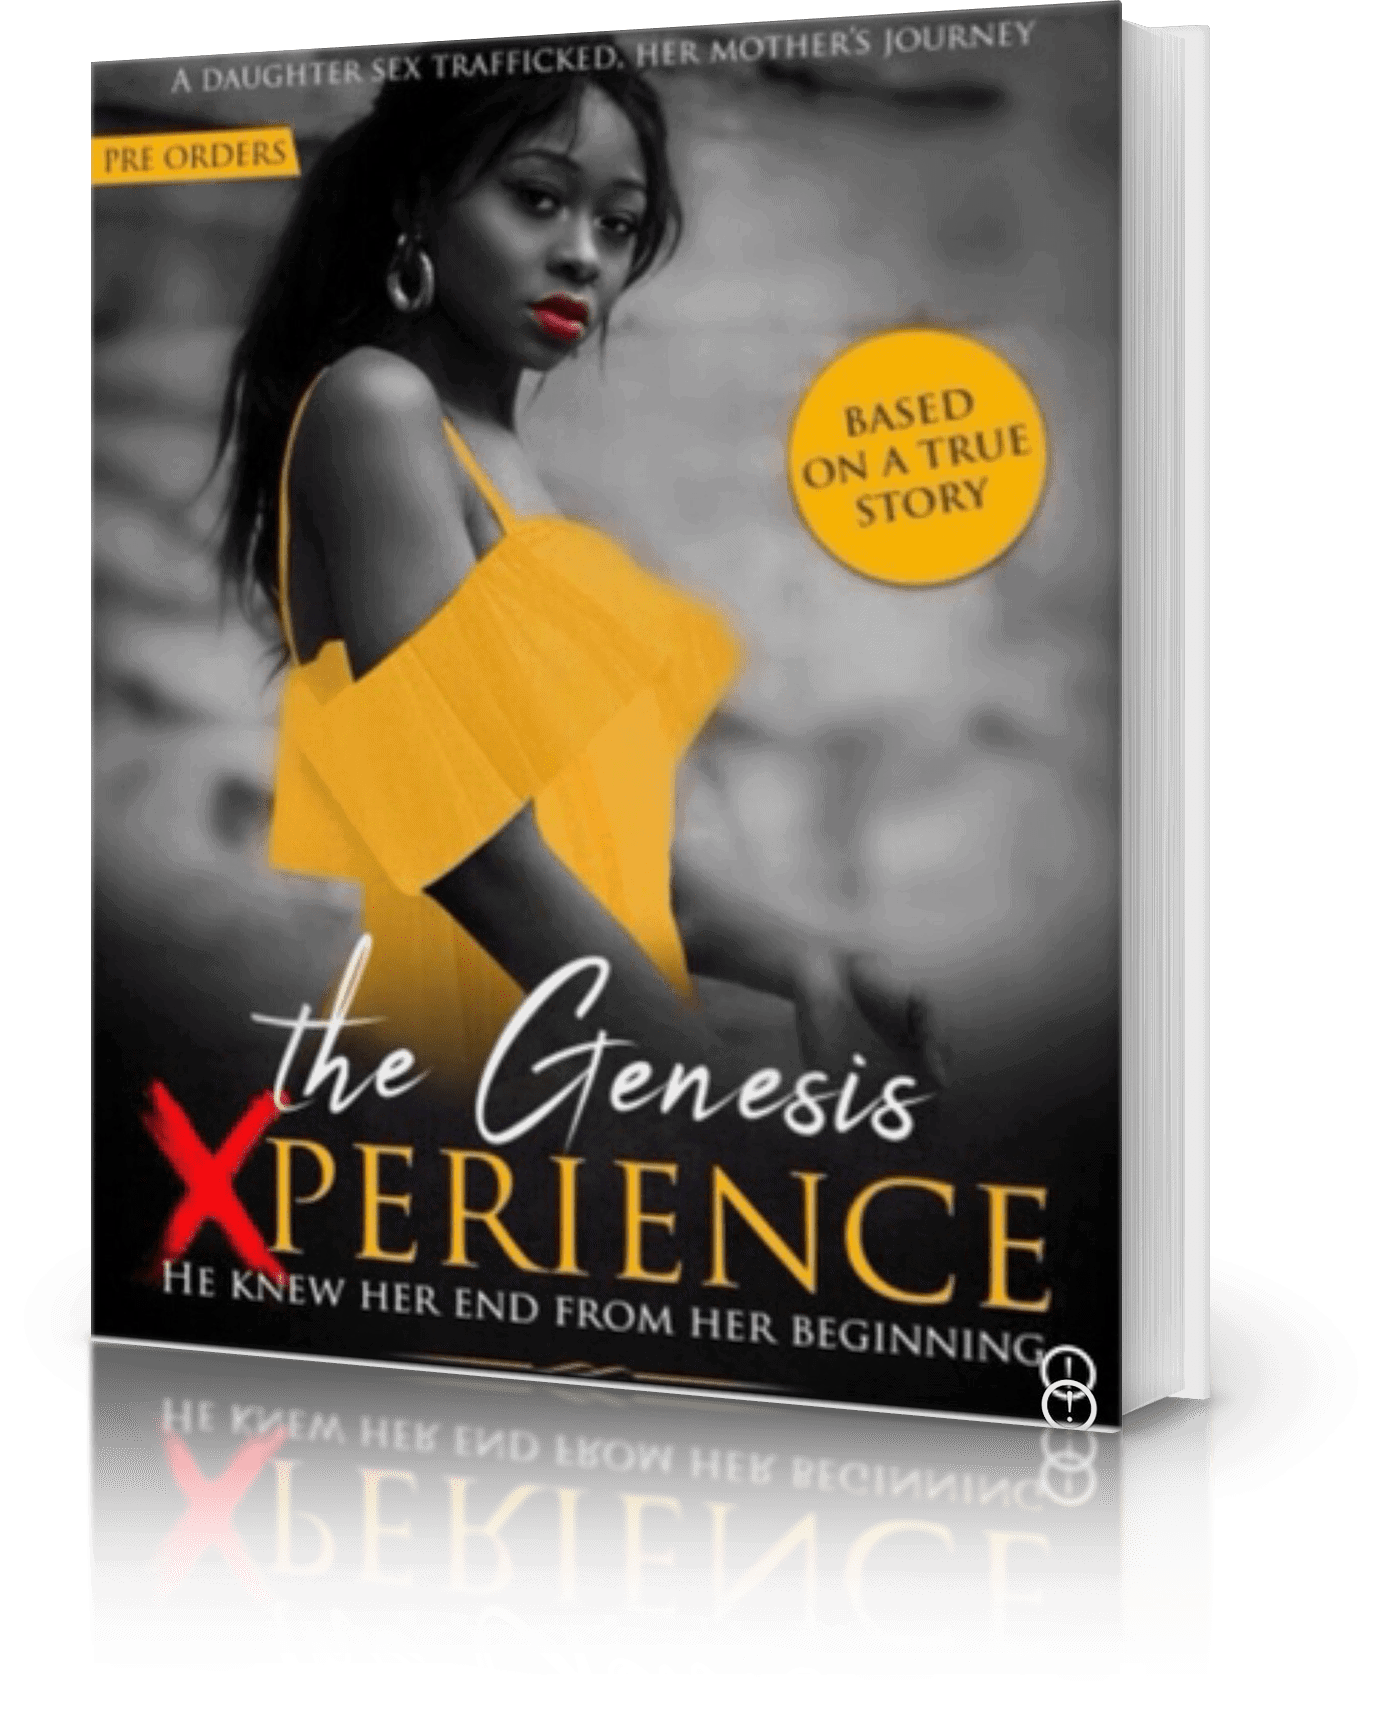 """Photo of A Book Representing """"The Genesis XPerience"""" with a Black Lady on the Cover wearing a yellow dress"""